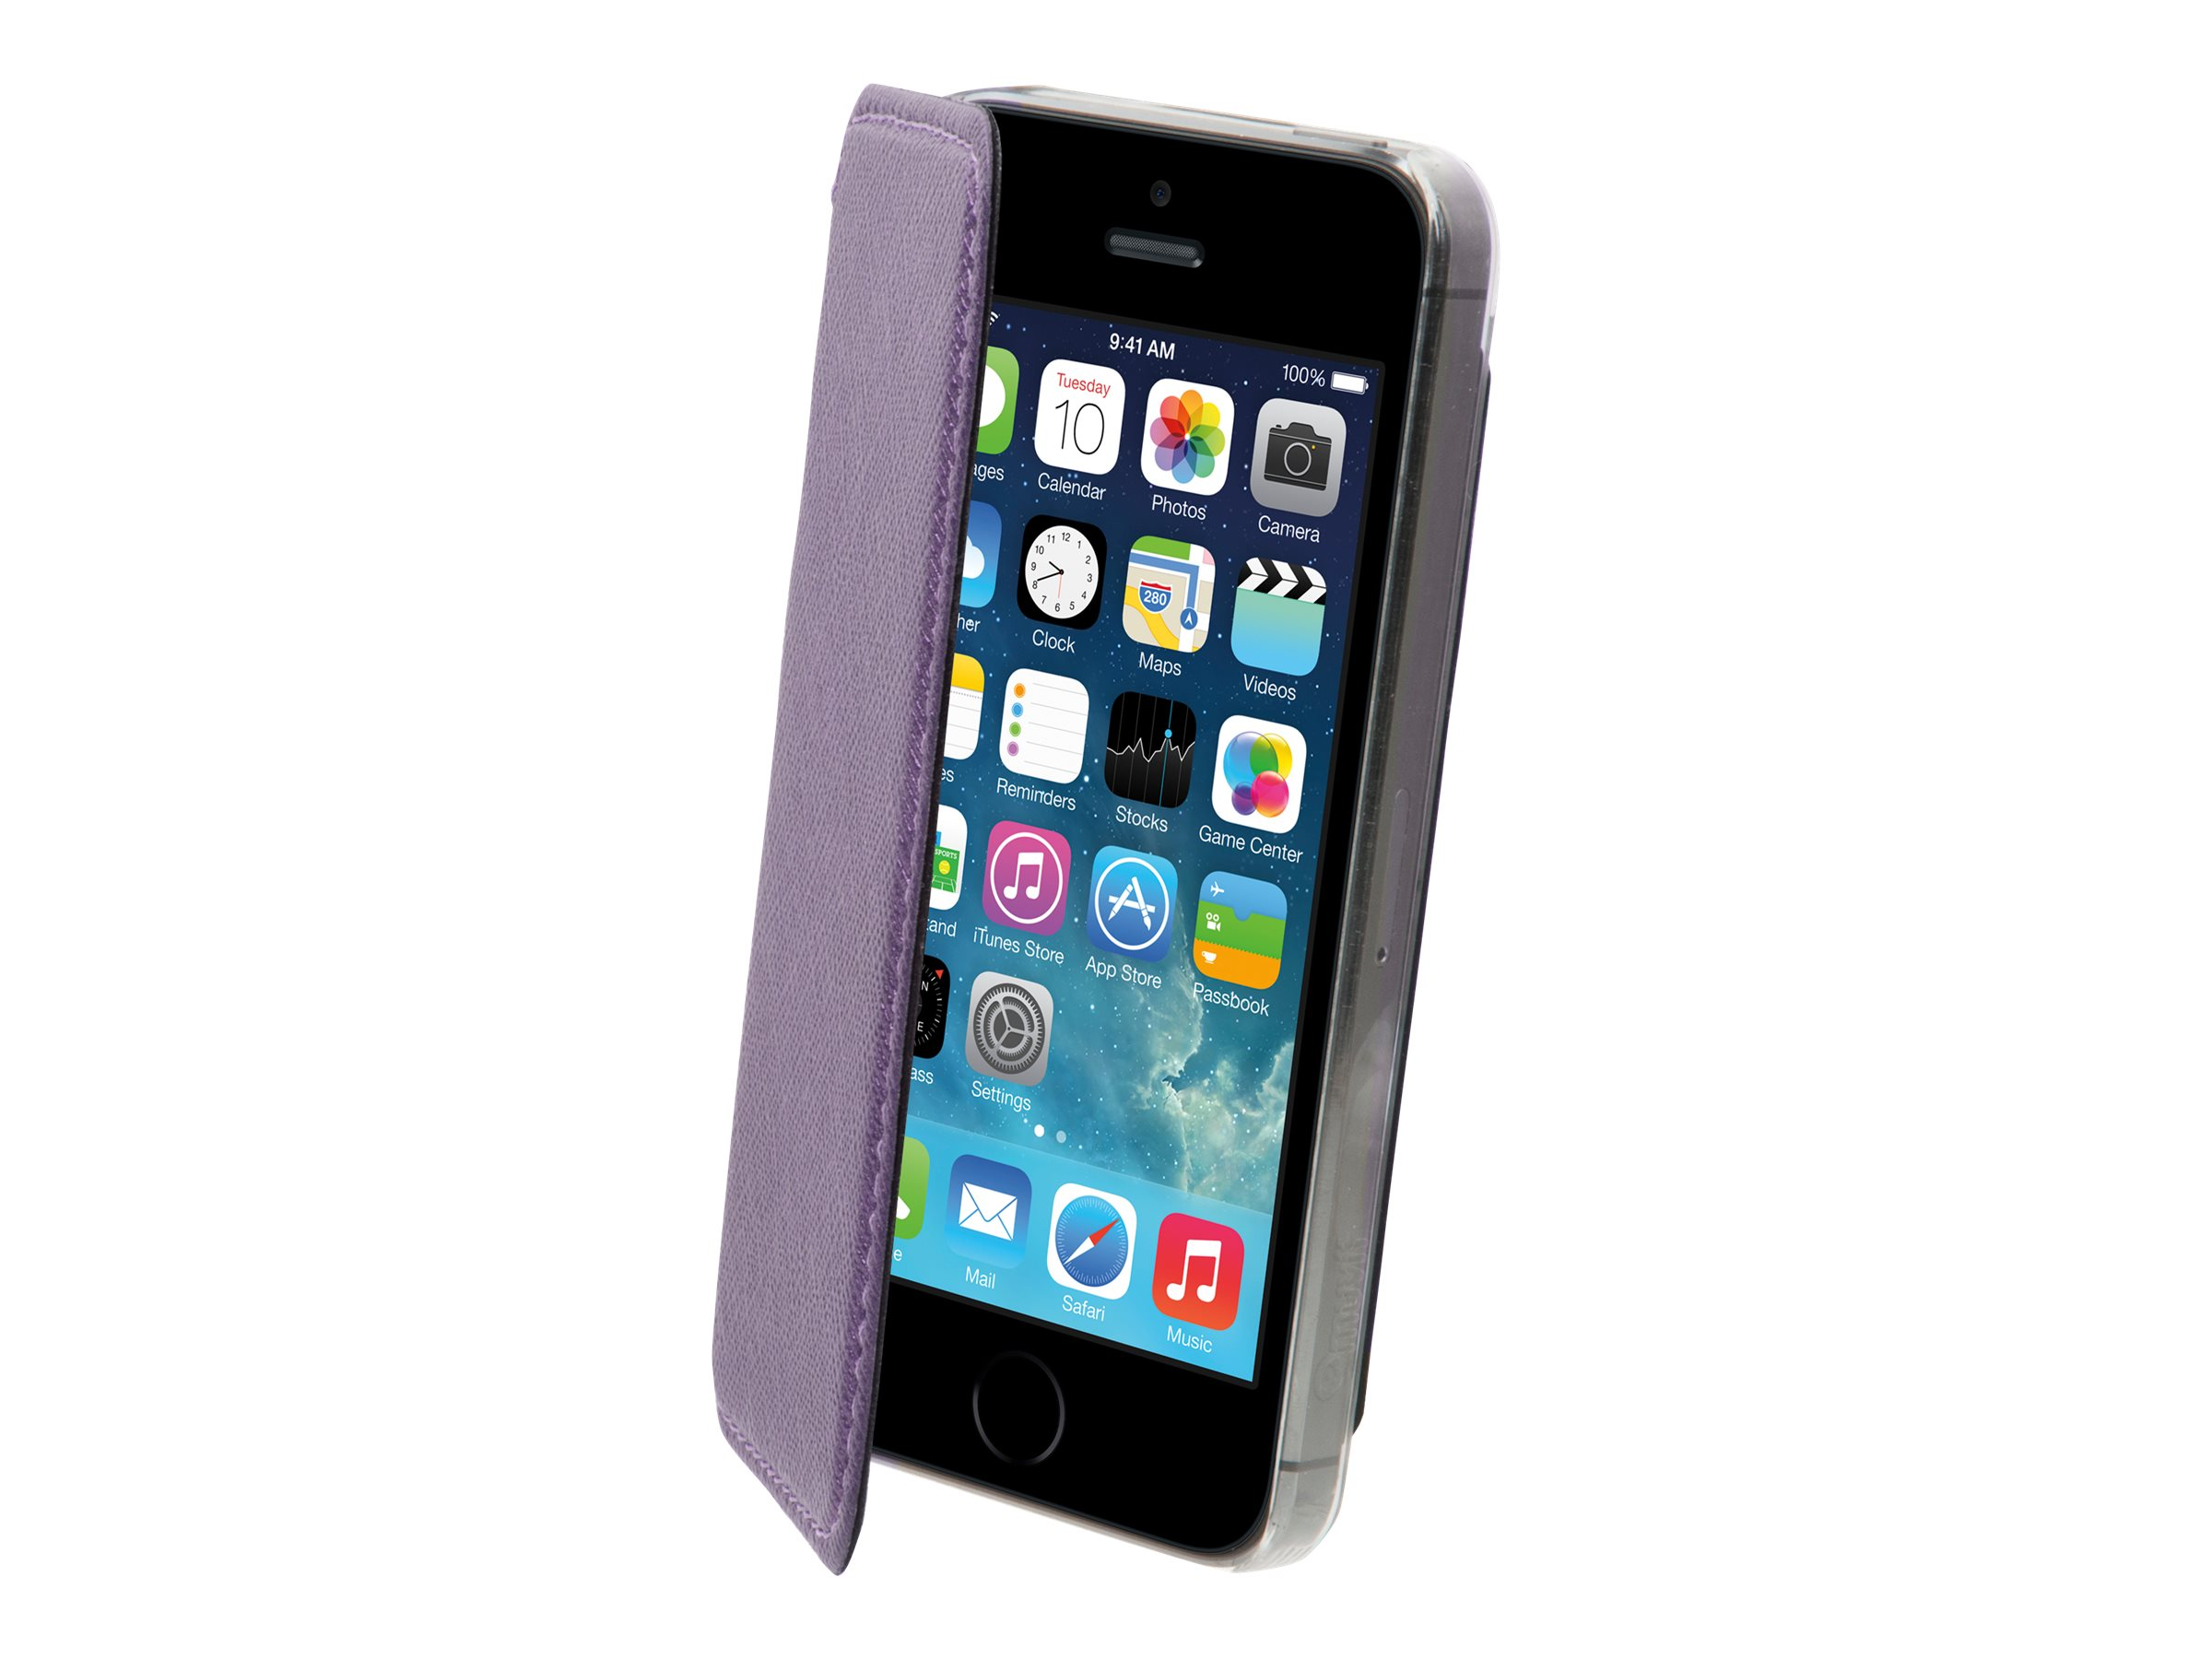 Muvit Made in Paris Crystal Folio - Boîtier de protection à rabat pour iPhone 5, 5s - cristal métallique violet